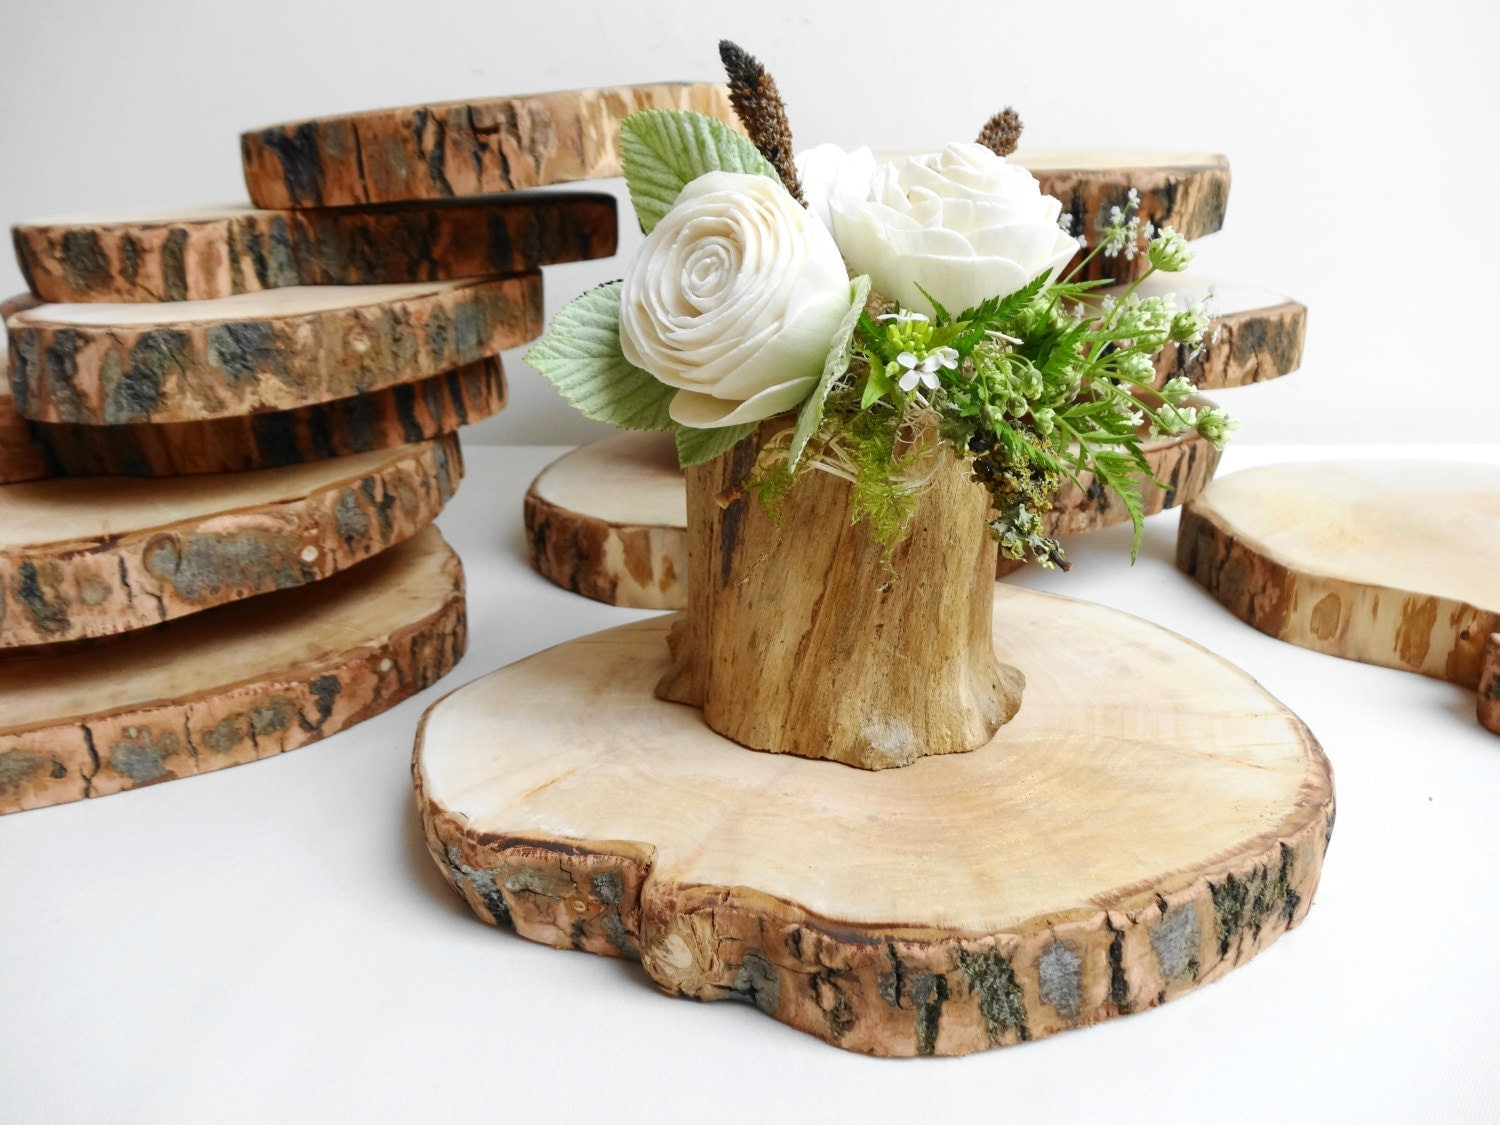 68 wedding wood slices wedding centerpieces for Wood trunk slices